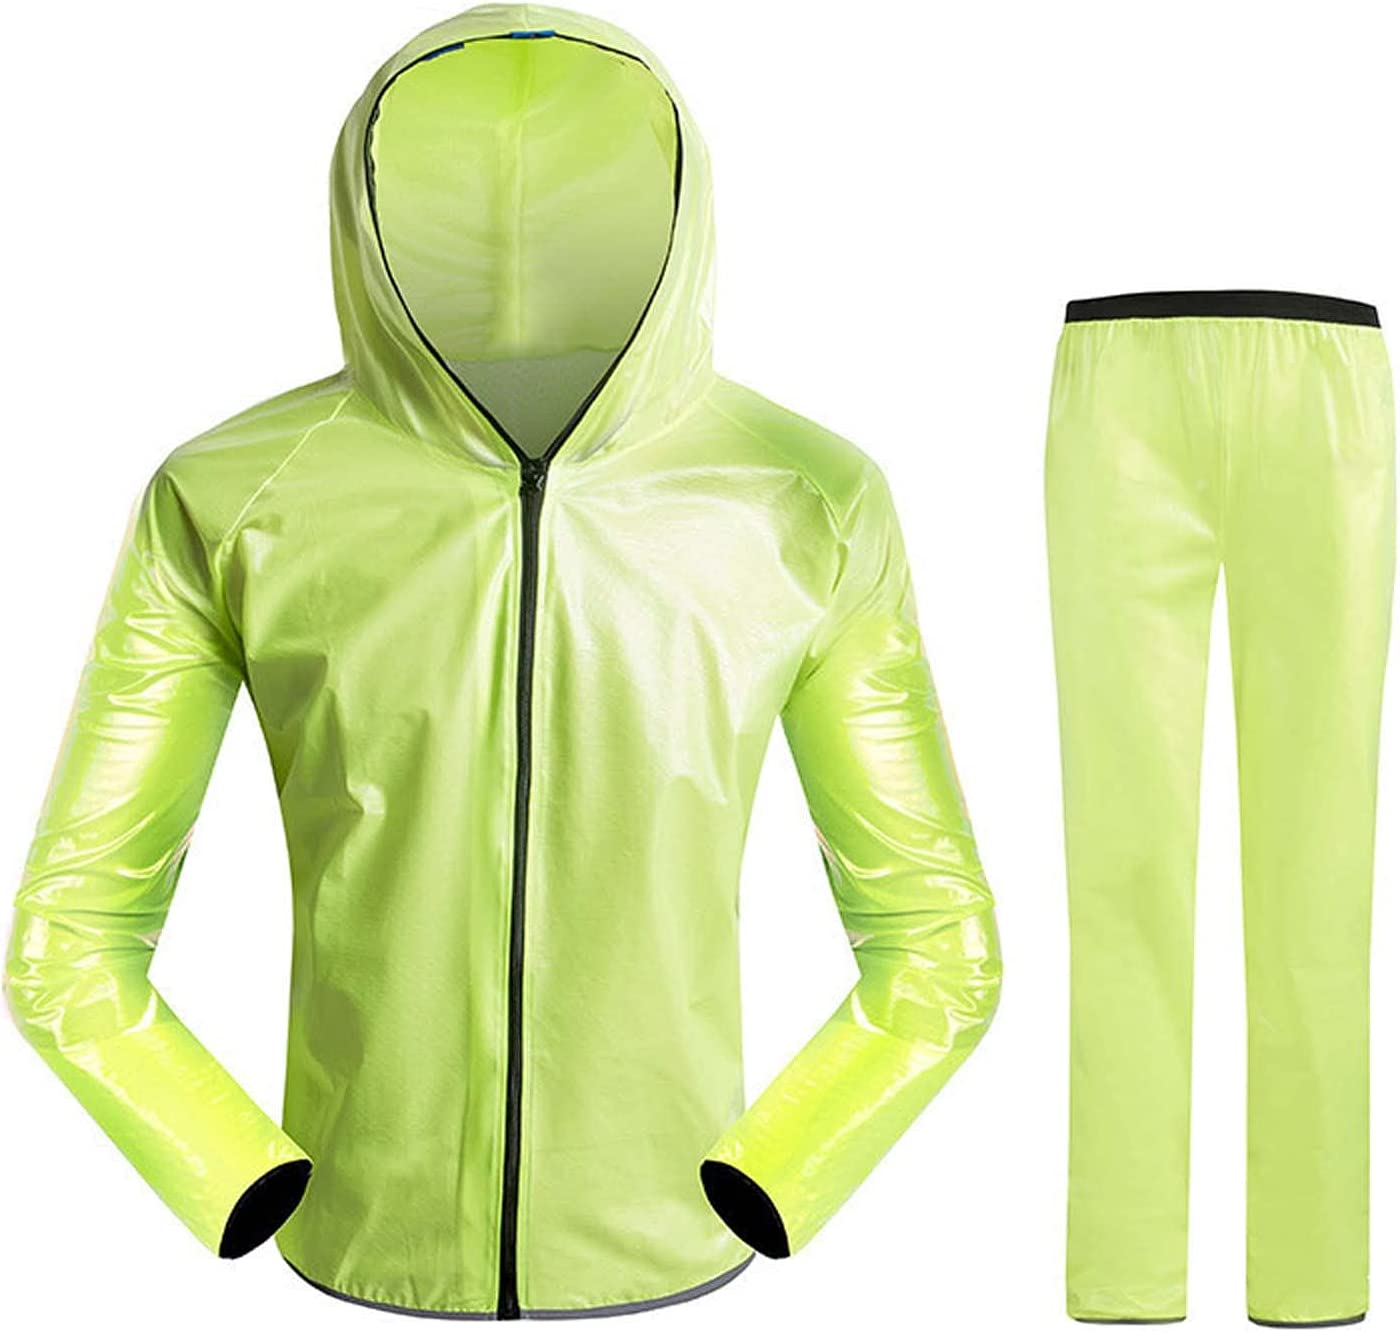 FHGH Adult Split Raincoat, Waterproof Cycling Raincoat and Trousers, for Cycling Climbing Fishing Takeaway,A,Large